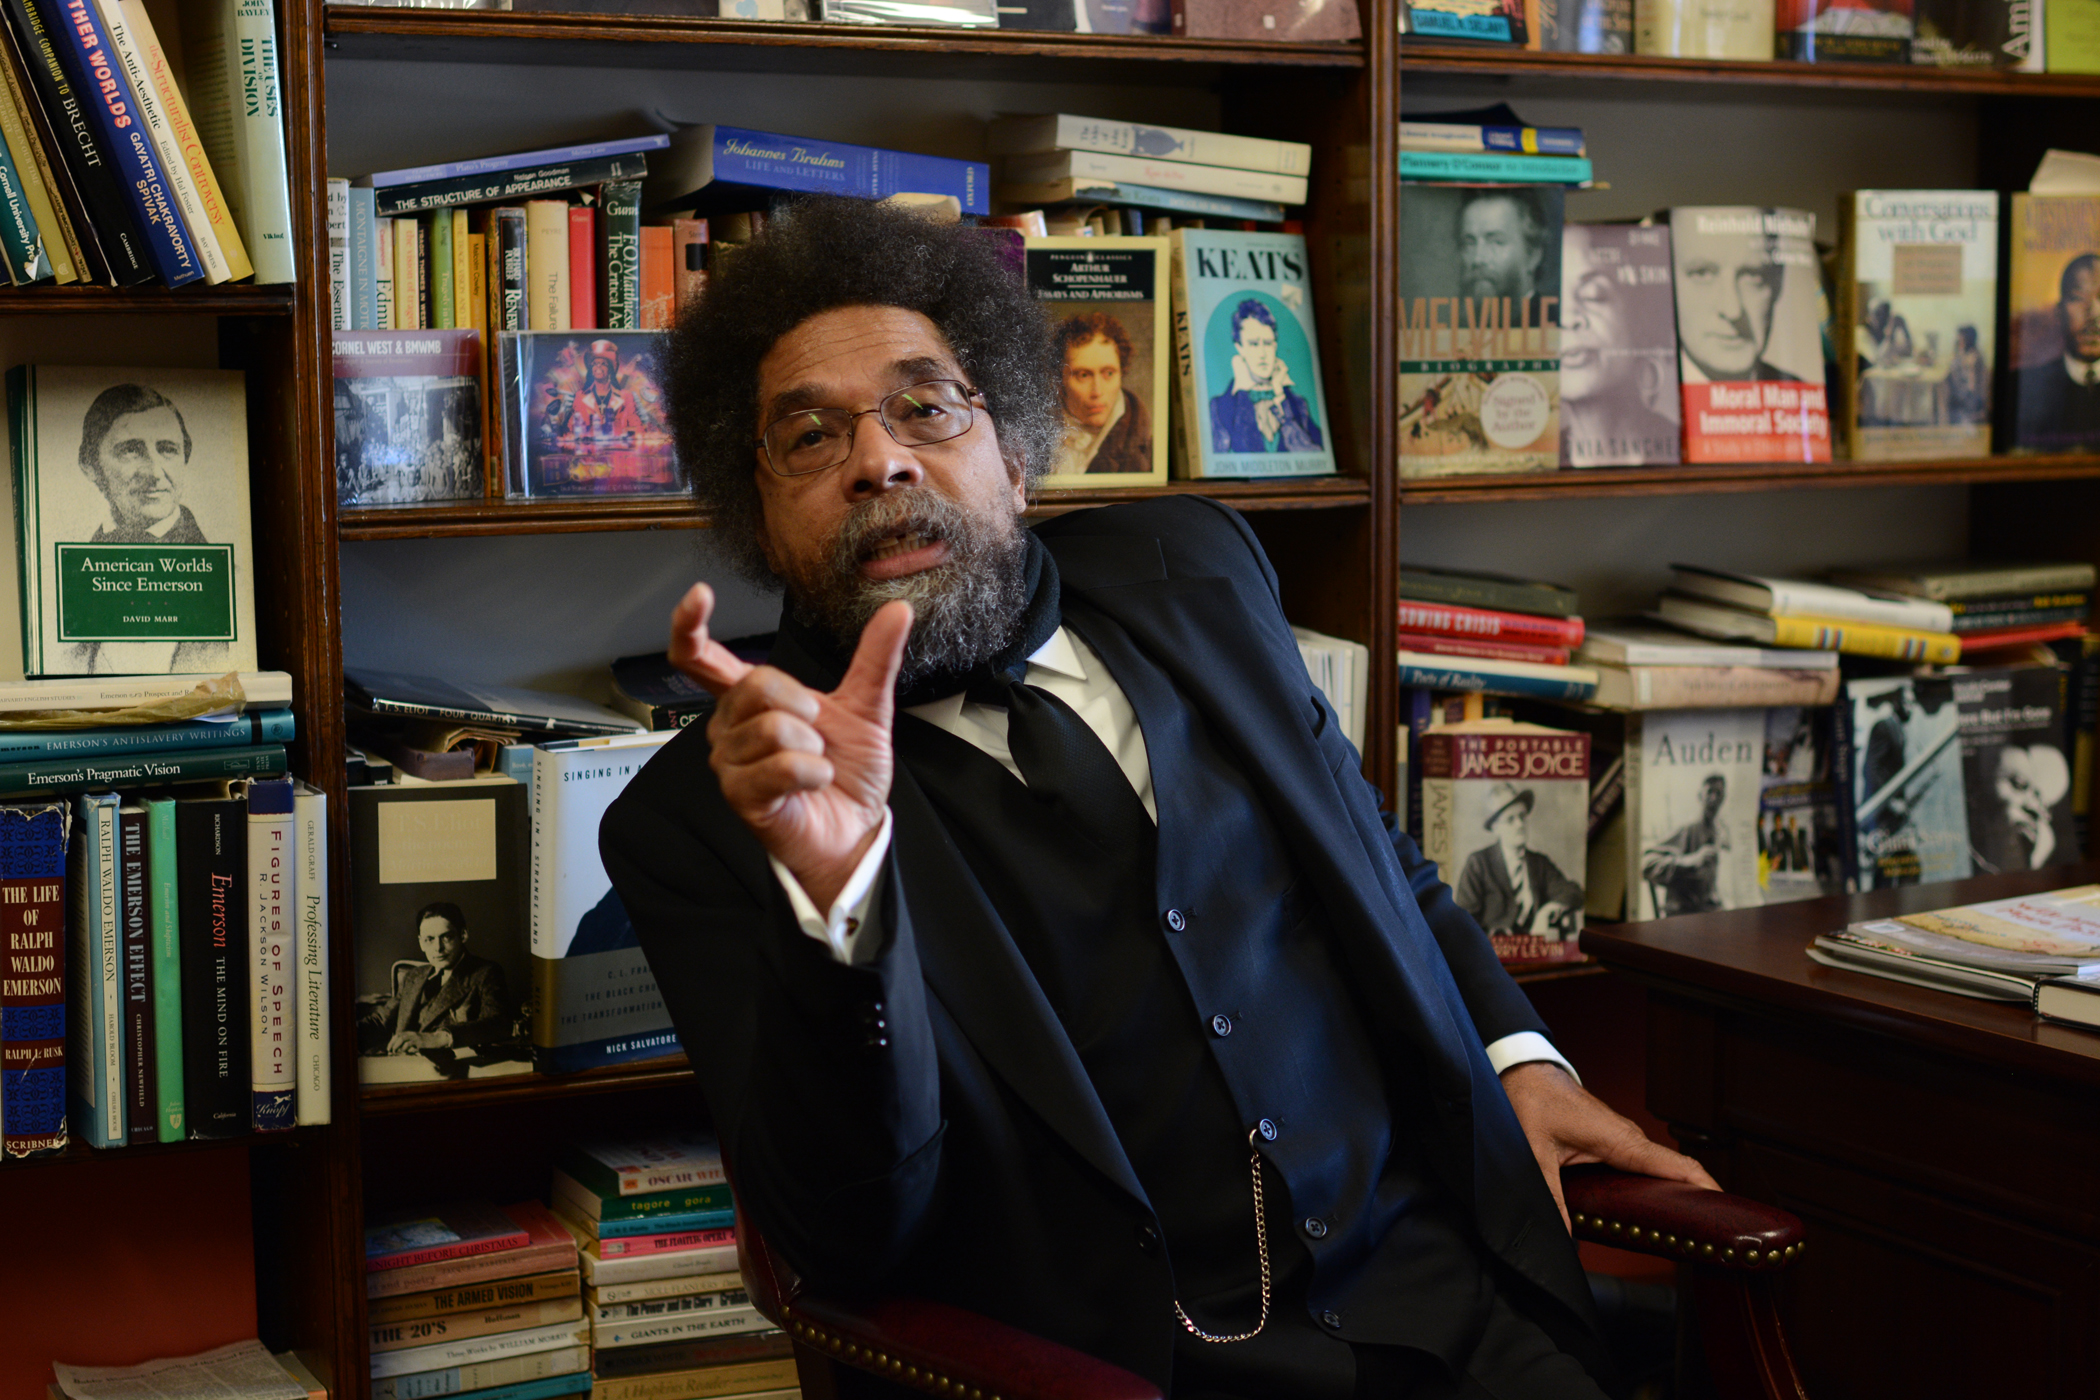 Cornel West on the Place for Muslims in America